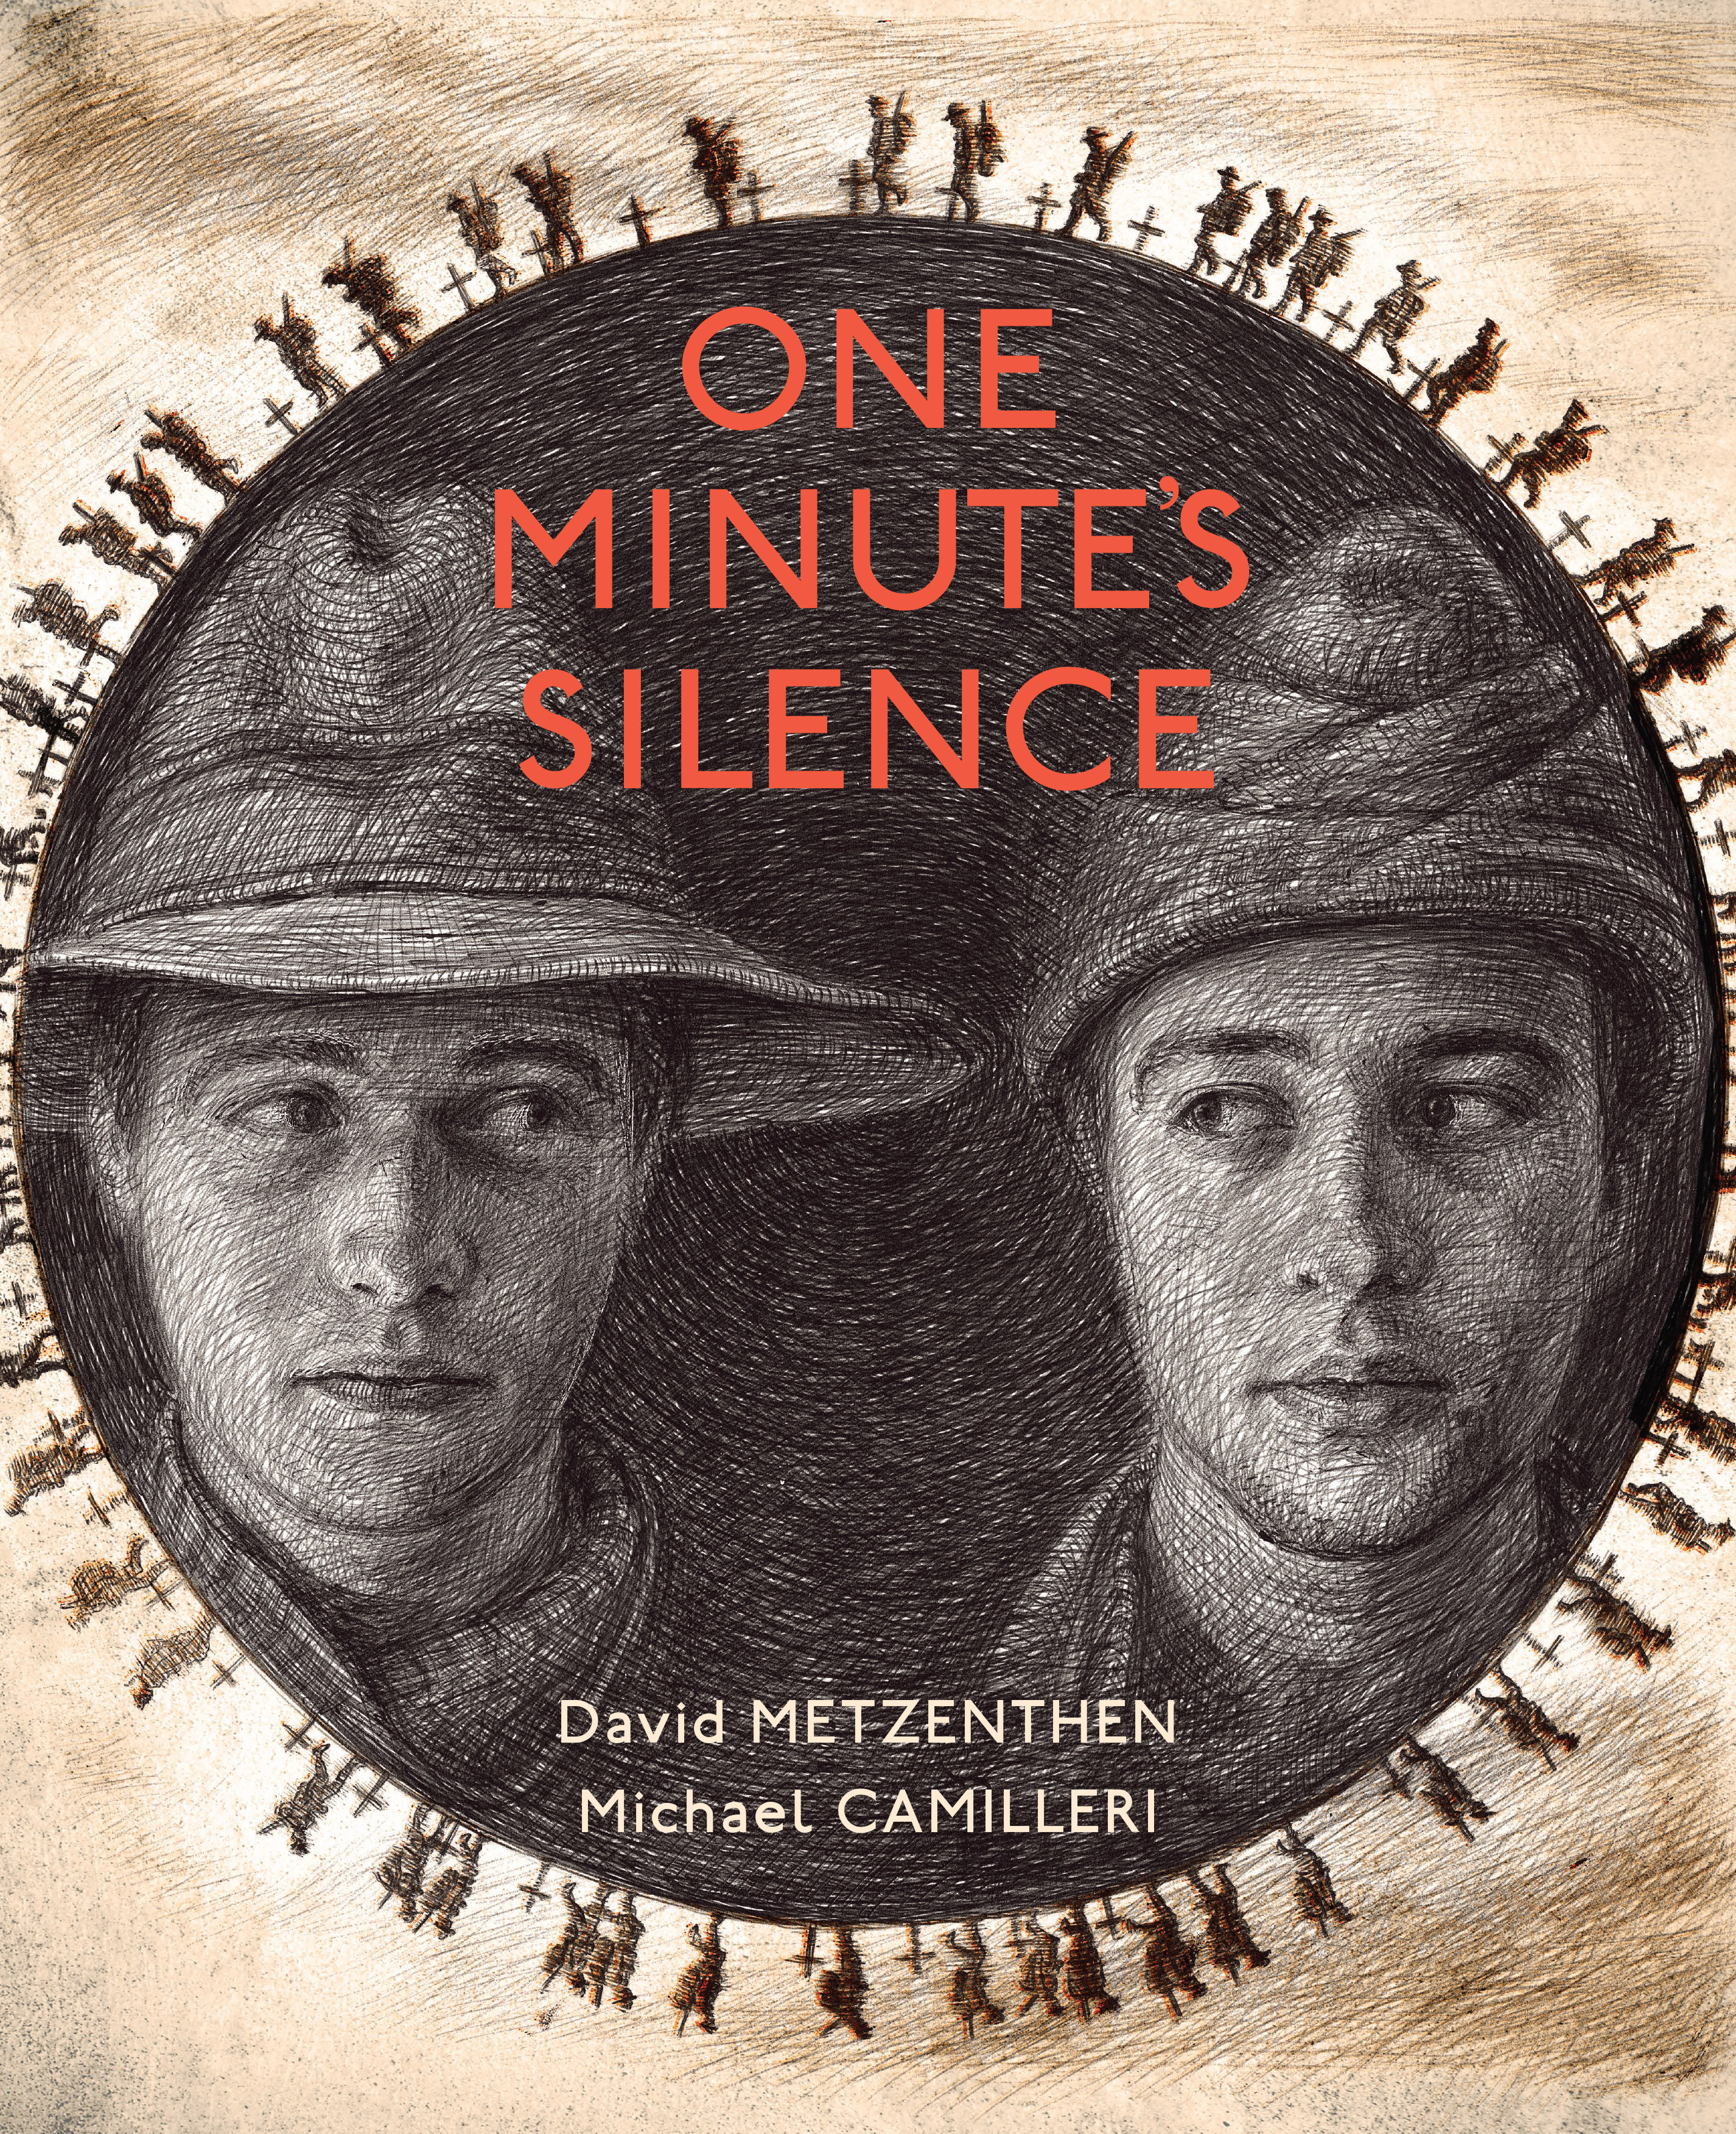 Cover image of the book 'One Minute's Silence'